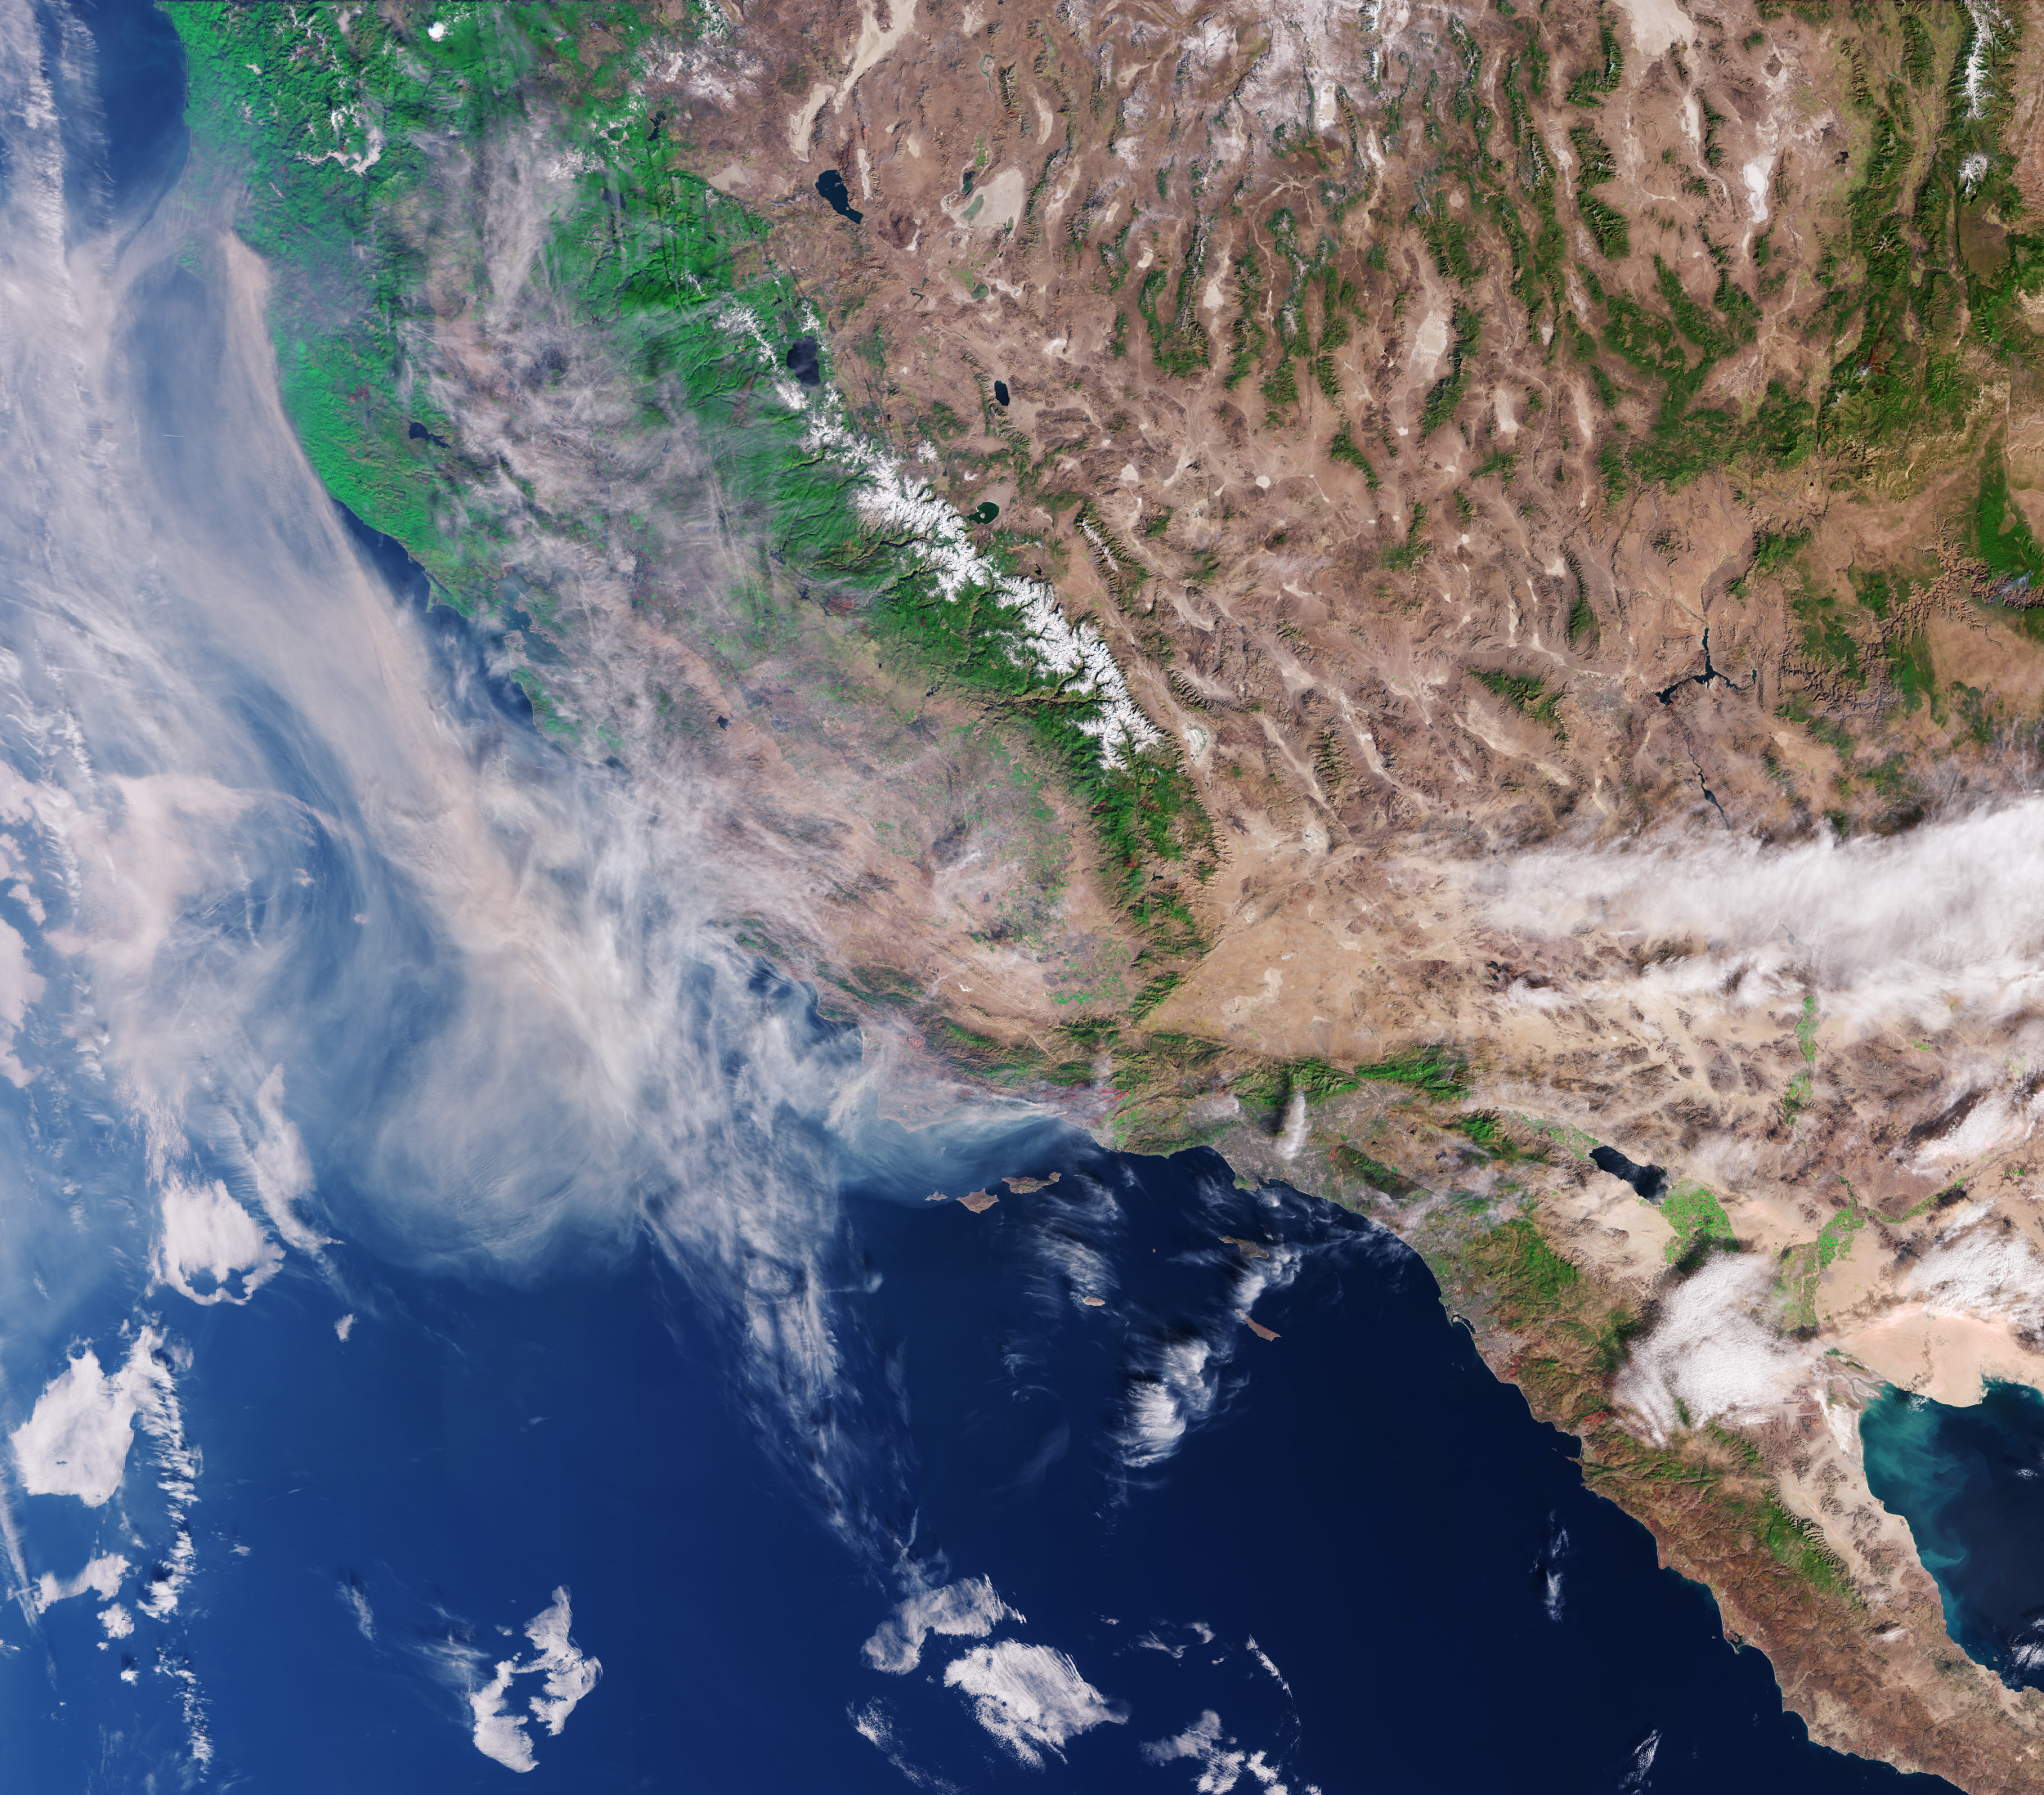 The Copernicus Sentinel-2 mission also captured images of California's wildfires last December.